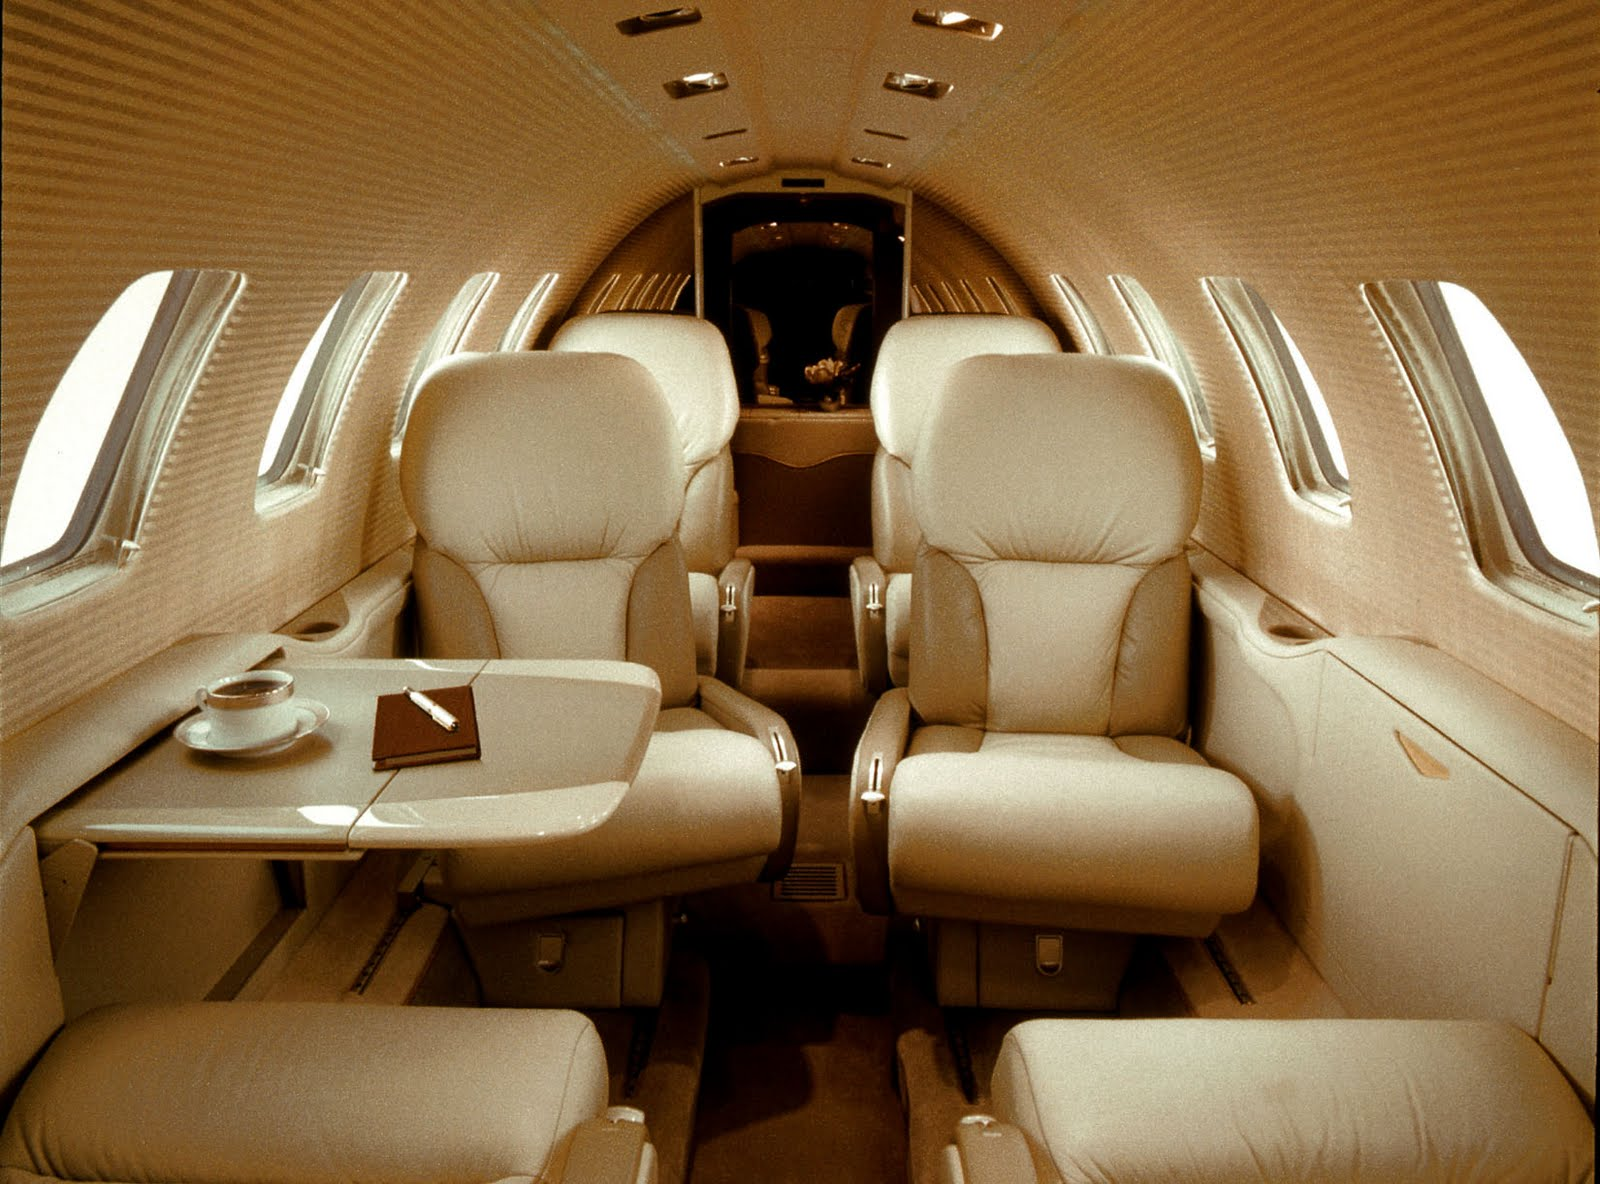 private jet services private jet charters or buying private jet. Black Bedroom Furniture Sets. Home Design Ideas